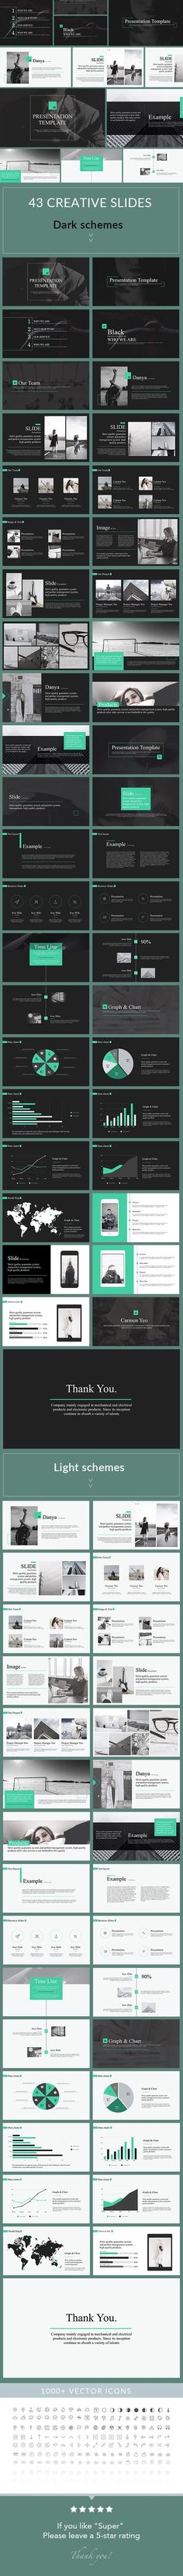 """Mark - Clean & Simple Keynote Template. Download here: <a href=""""https://graphicriver.net/item/mark-clean-simple-keynote-template/17560225?ref=ksioks"""" rel=""""nofollow"""" target=""""_blank"""">graphicriver.net/...</a>"""